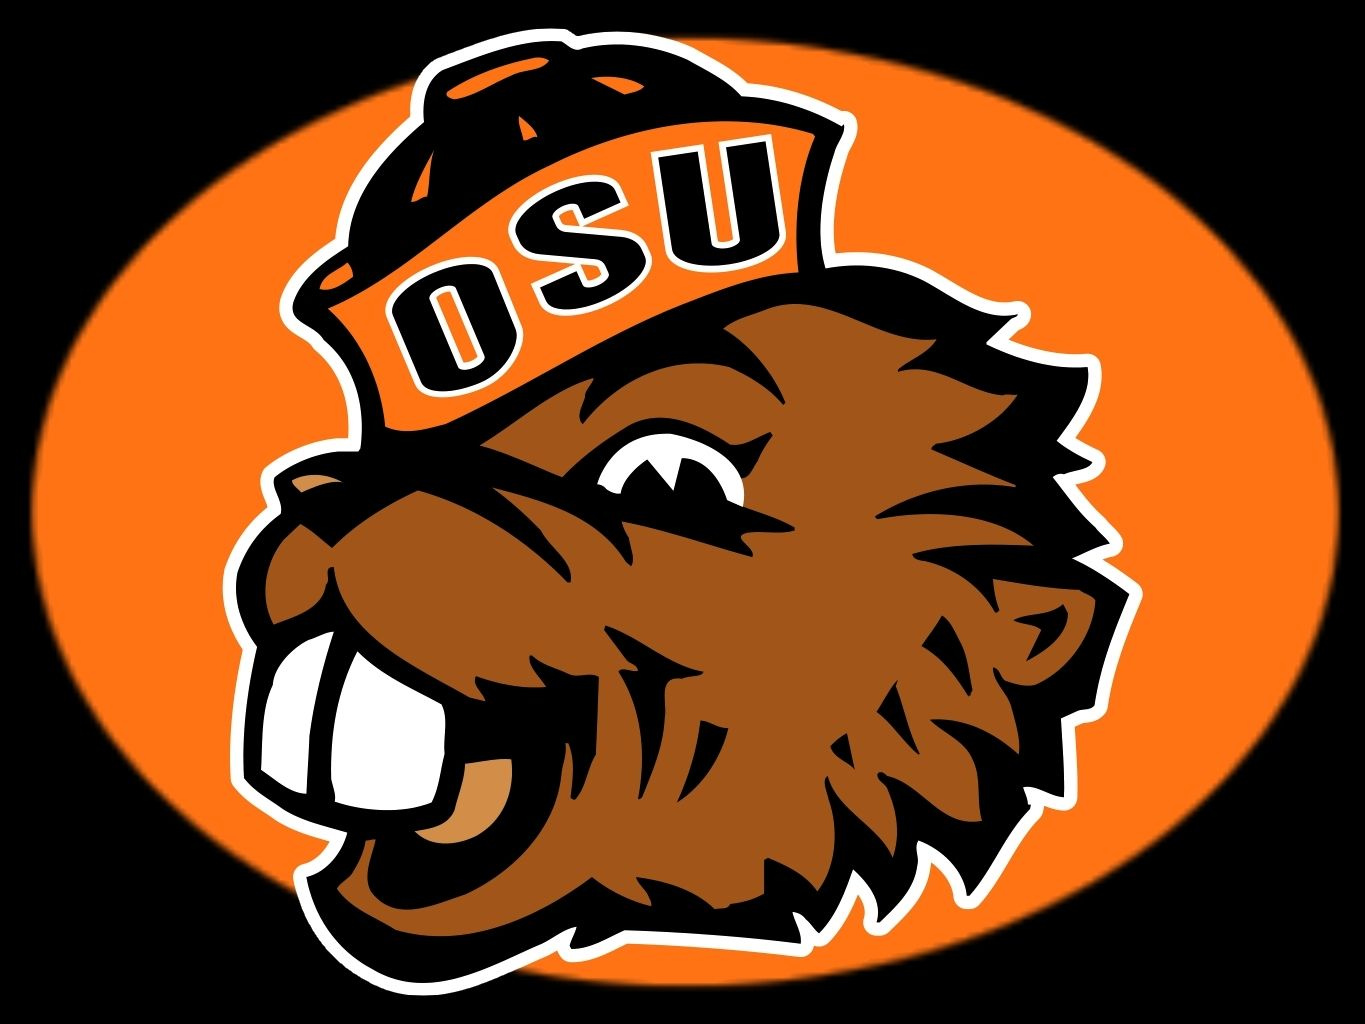 Oregon State Beavers Oregon State Beavers Oregon State Beavers Football Oregon State